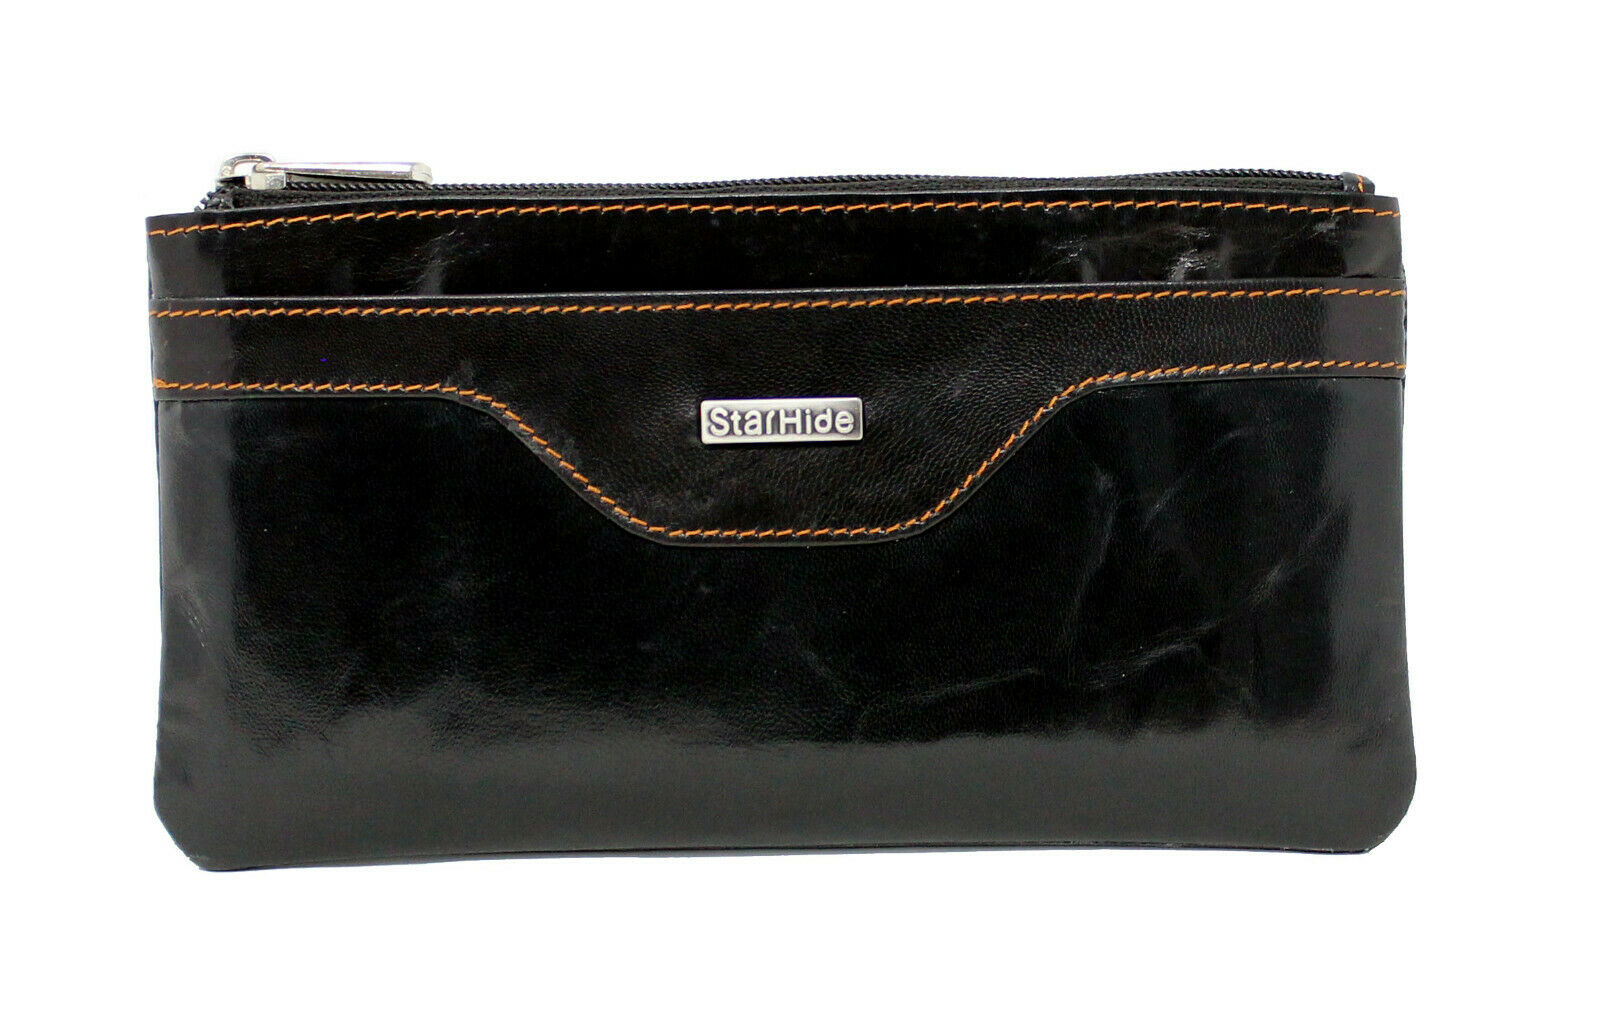 Ladies RFID Blocking Leather Pouch Purse Black